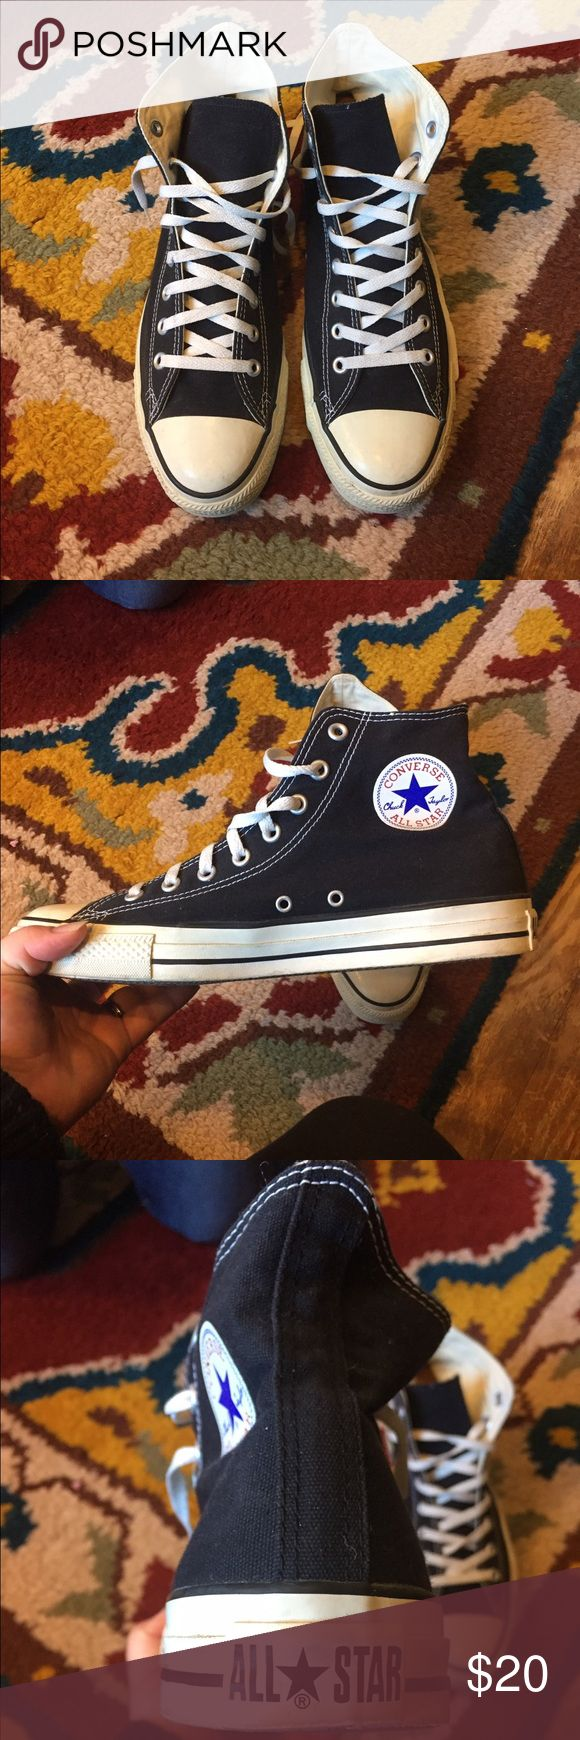 Men's converse all stars Converse all star high tops Converse Shoes Sneakers